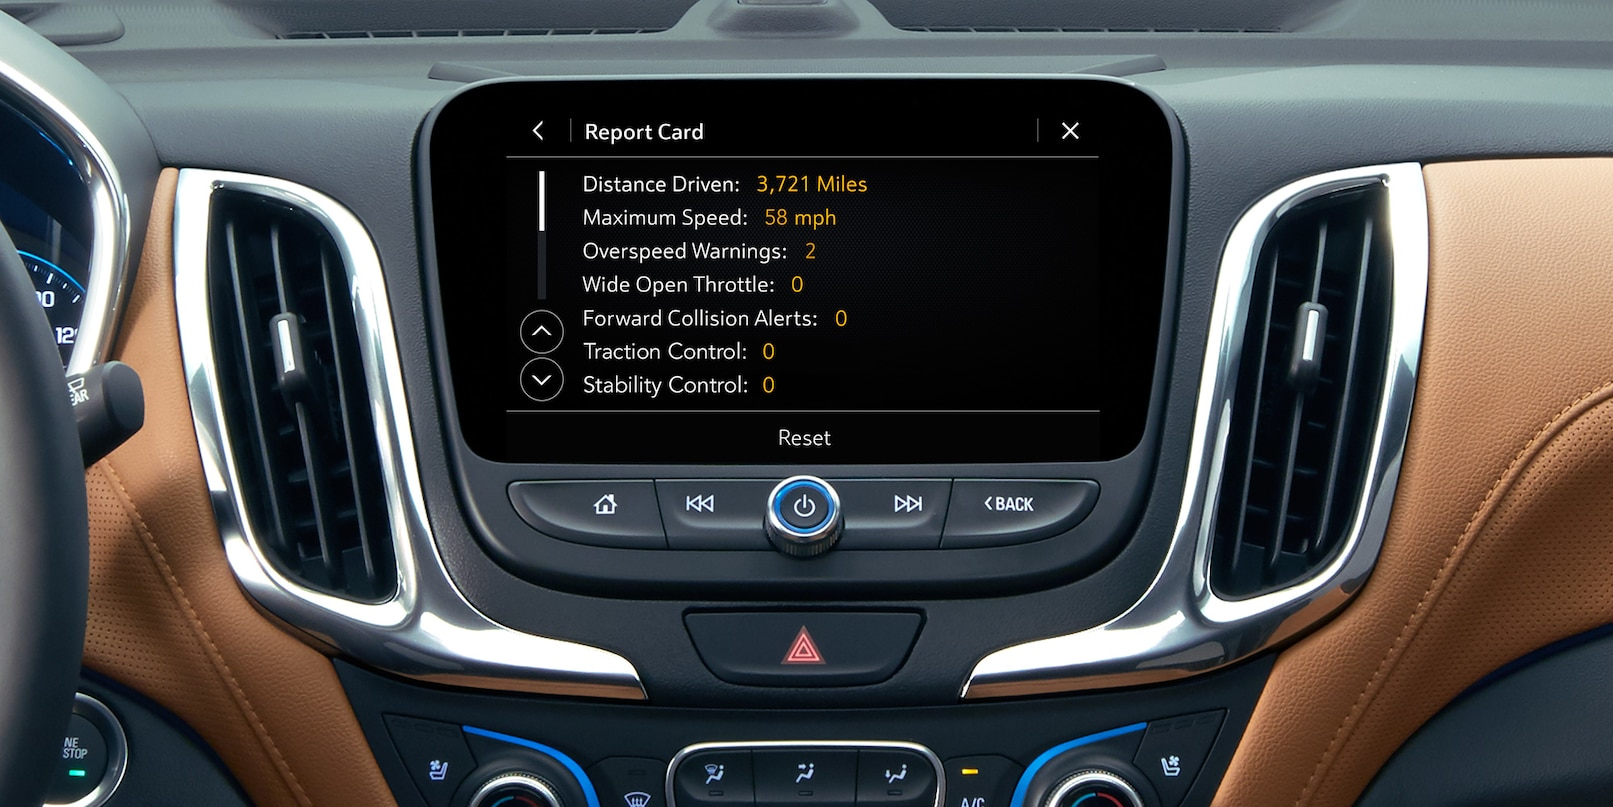 Teen Driver Technology in the 2019 Equinox